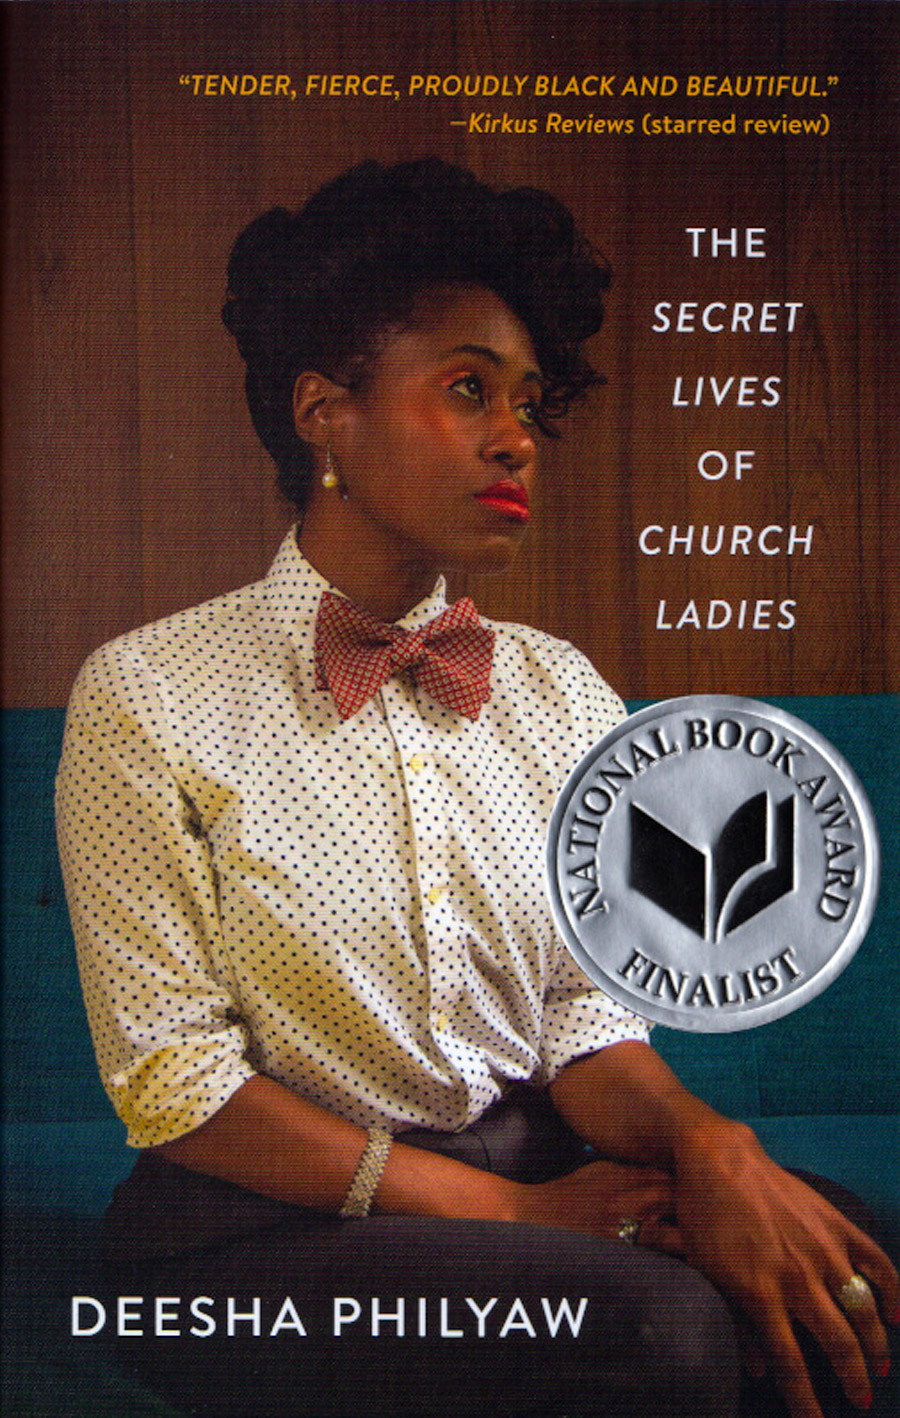 The Secret Lives of Church Ladies